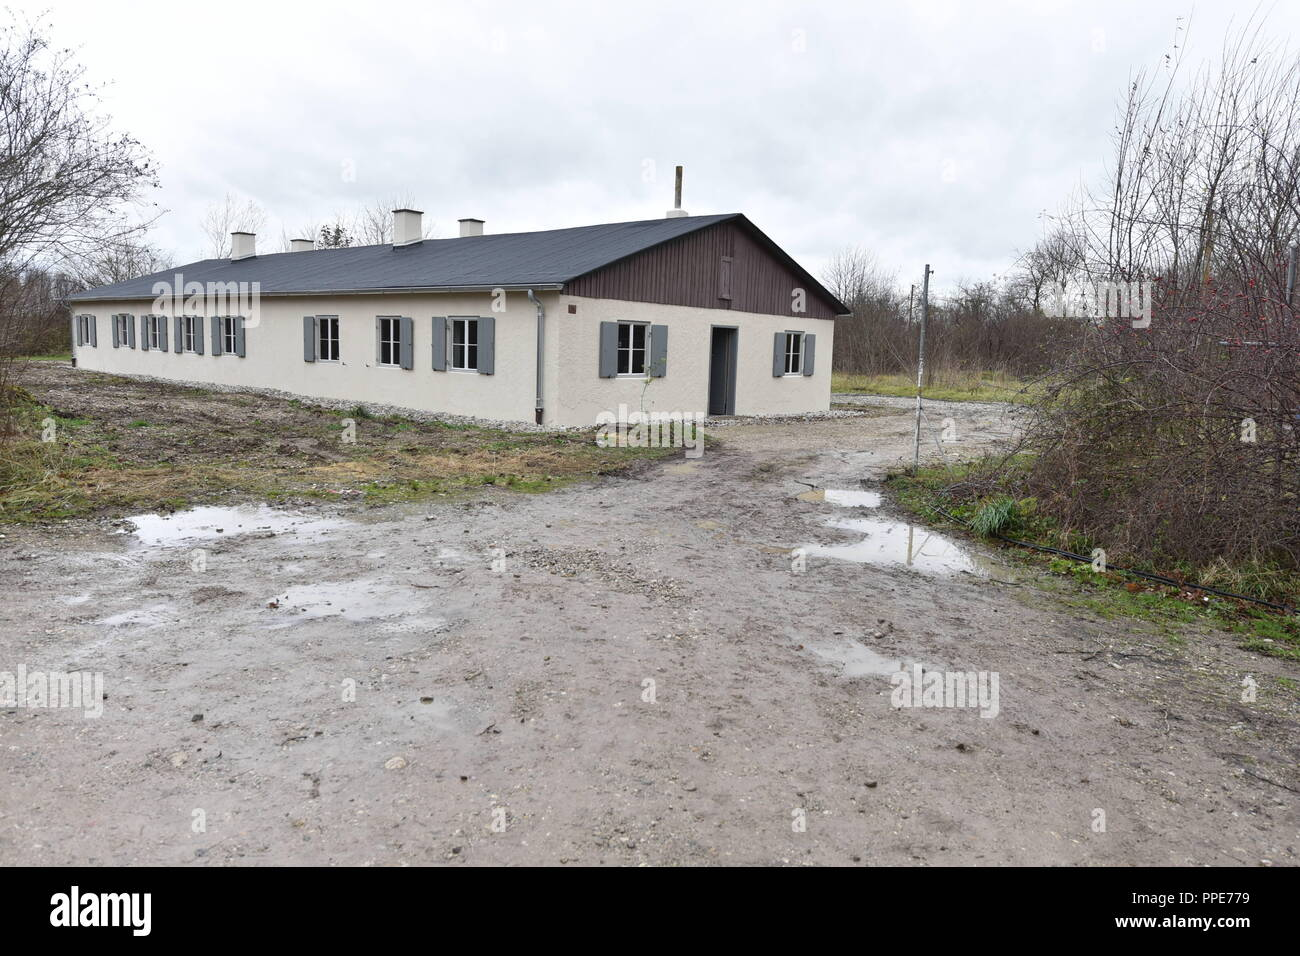 The listed Barrack 5 in the former forced labor camp at the Ehrenbuergstrasse in Neuaubing has been handed over to the NS Documentation Center as an exhibition site after elaborate refurbishment. The historic building will be the starting point for a tour of the 24,000-square-meter former camp site, on which a memorial site is planned to commemorate the victims of the Nazi regime. - Stock Image